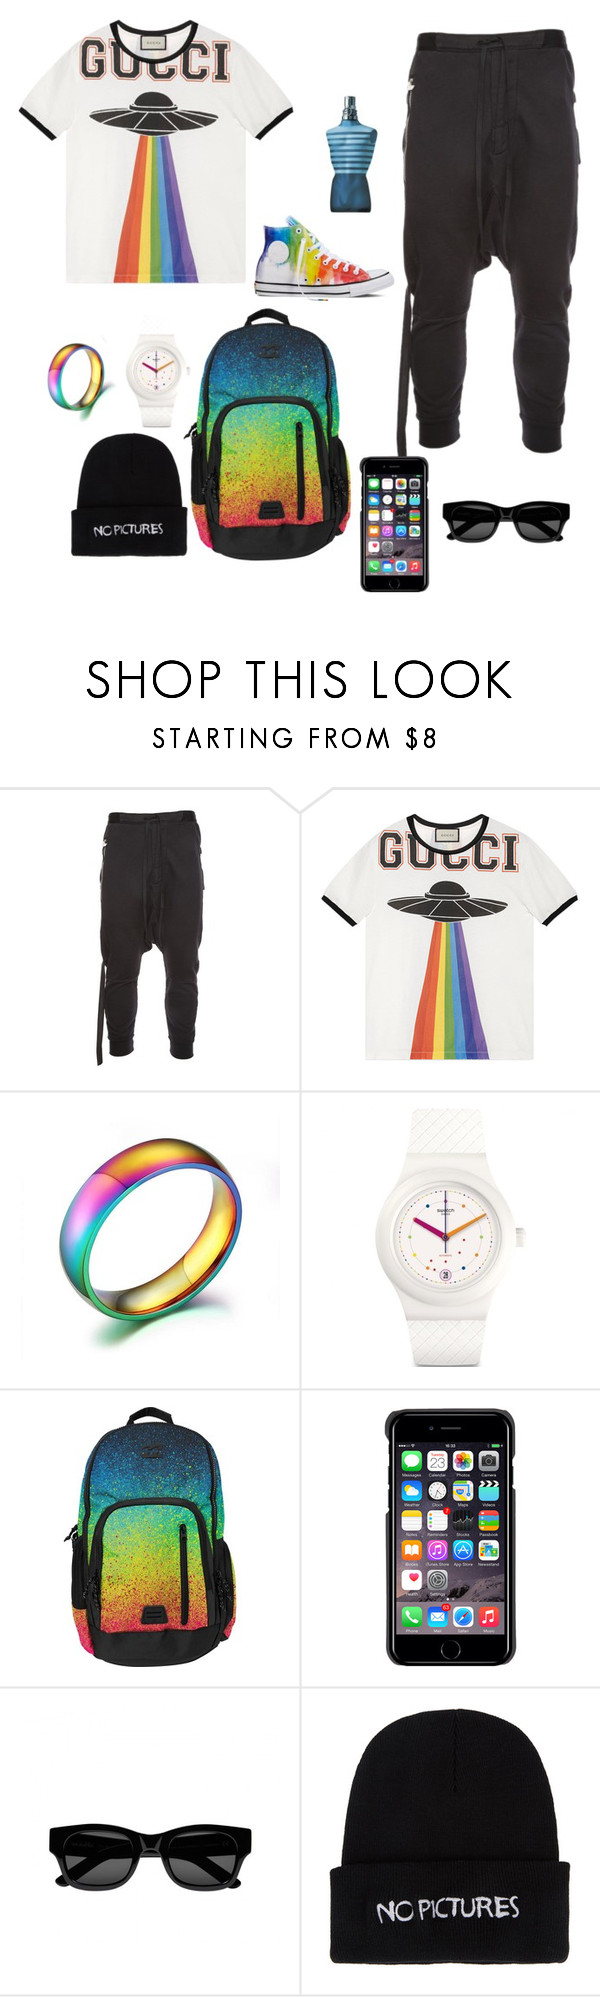 """""""created by Marianna Kocharyan"""" by m180 ❤ liked on Polyvore featuring Unravel, Gucci, Billabong, County Of Milan, Sun Buddies, Nasaseasons, Jean-Paul Gaultier, Converse, men's fashion and menswear"""